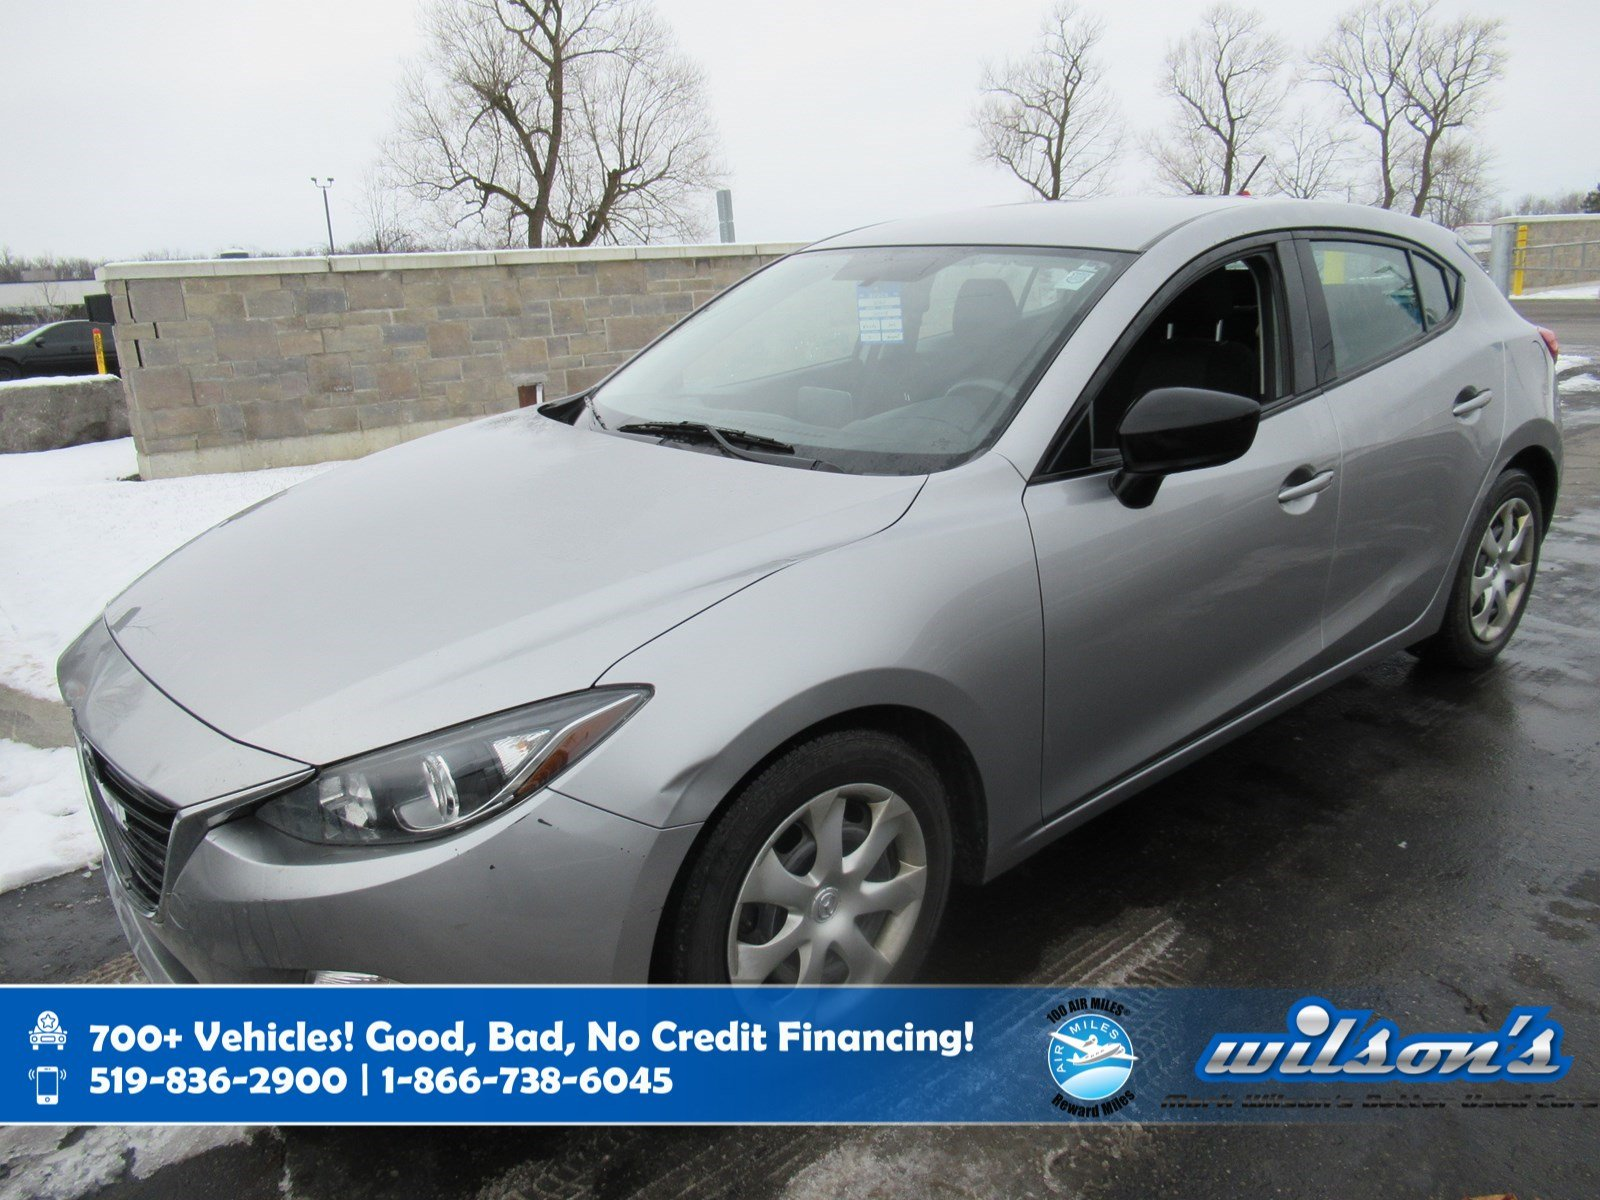 Certified Pre-Owned 2016 Mazda3 GX Hatchback, 6 Speed, Navigation, Rear Camera, Bluetooth, Keyless Entry, Cruise Control and more!